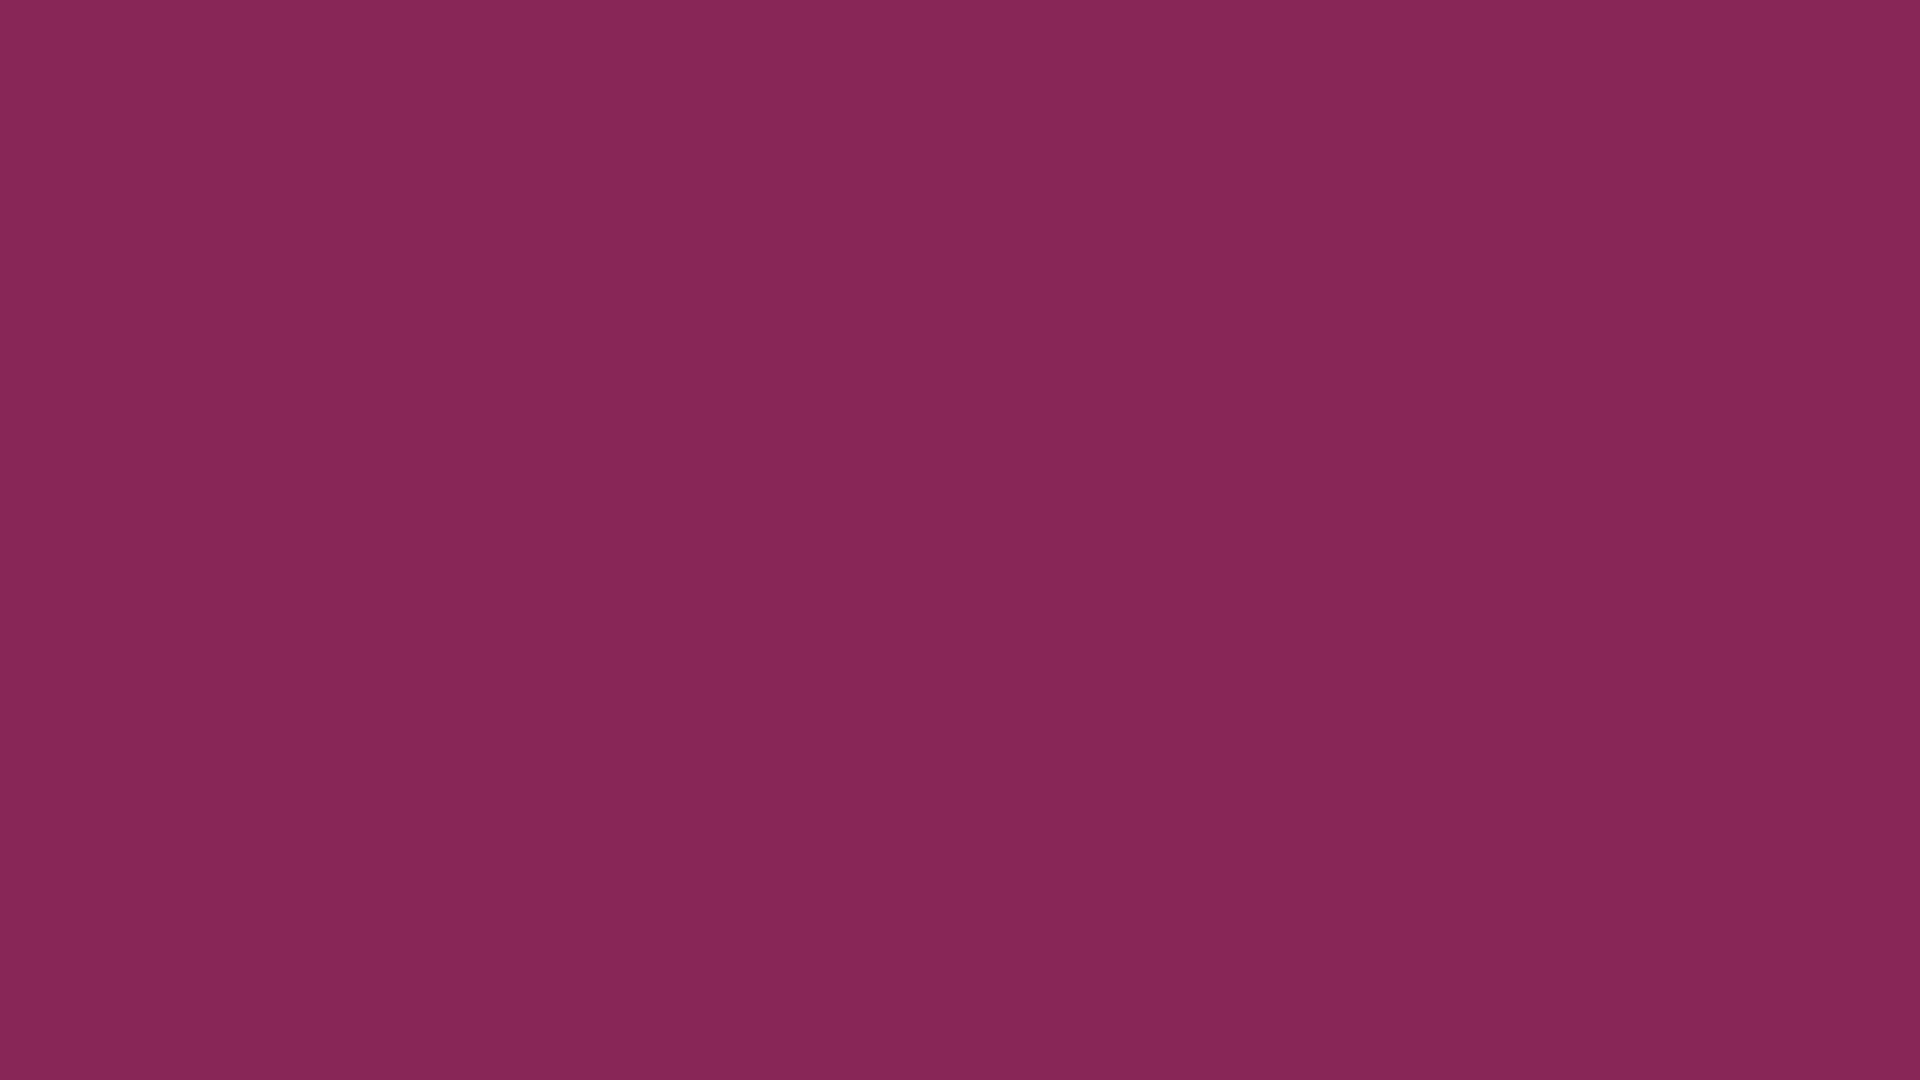 Free resolution Dark Raspberry solid color background, view .